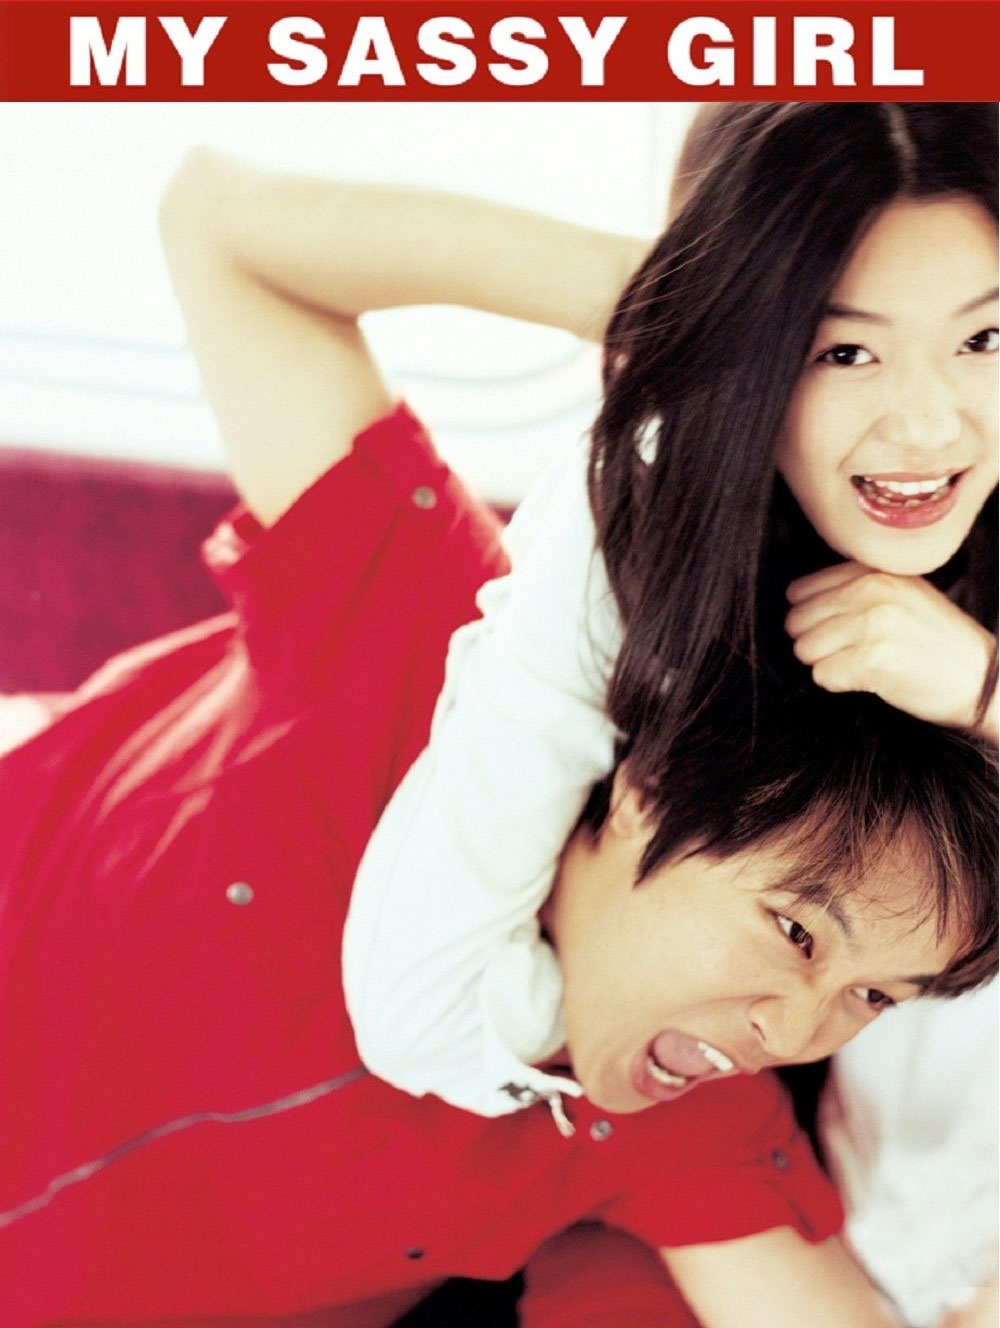 Korean film fest offers 'My Sassy Girl'